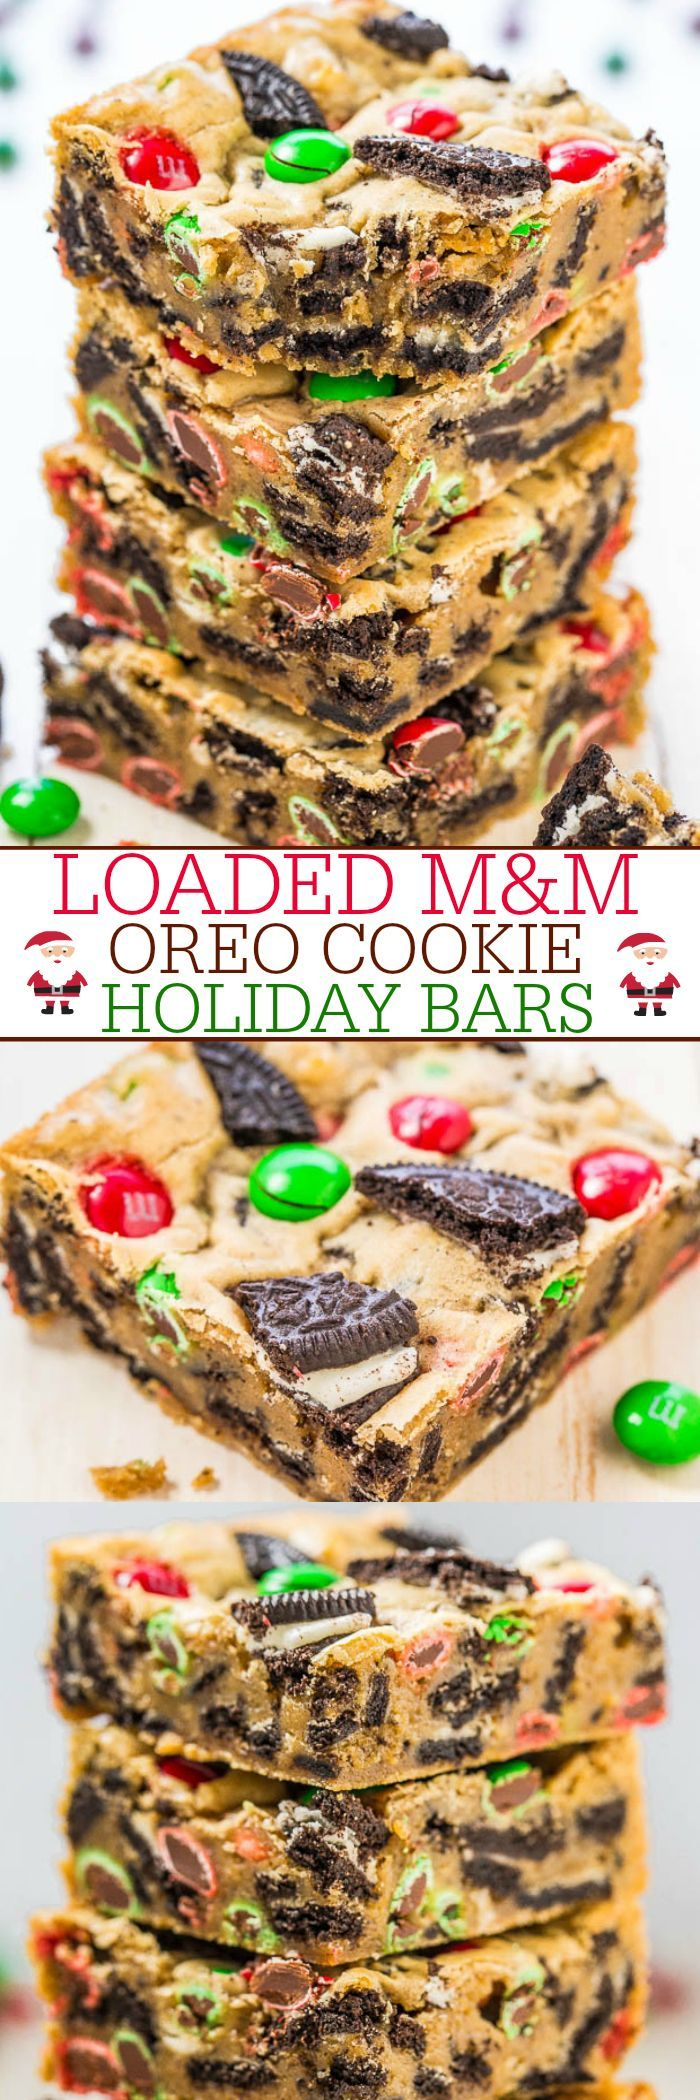 Loaded M&M Oreo Cookie Holiday Bars - Stuffed to the max with M&M's and…